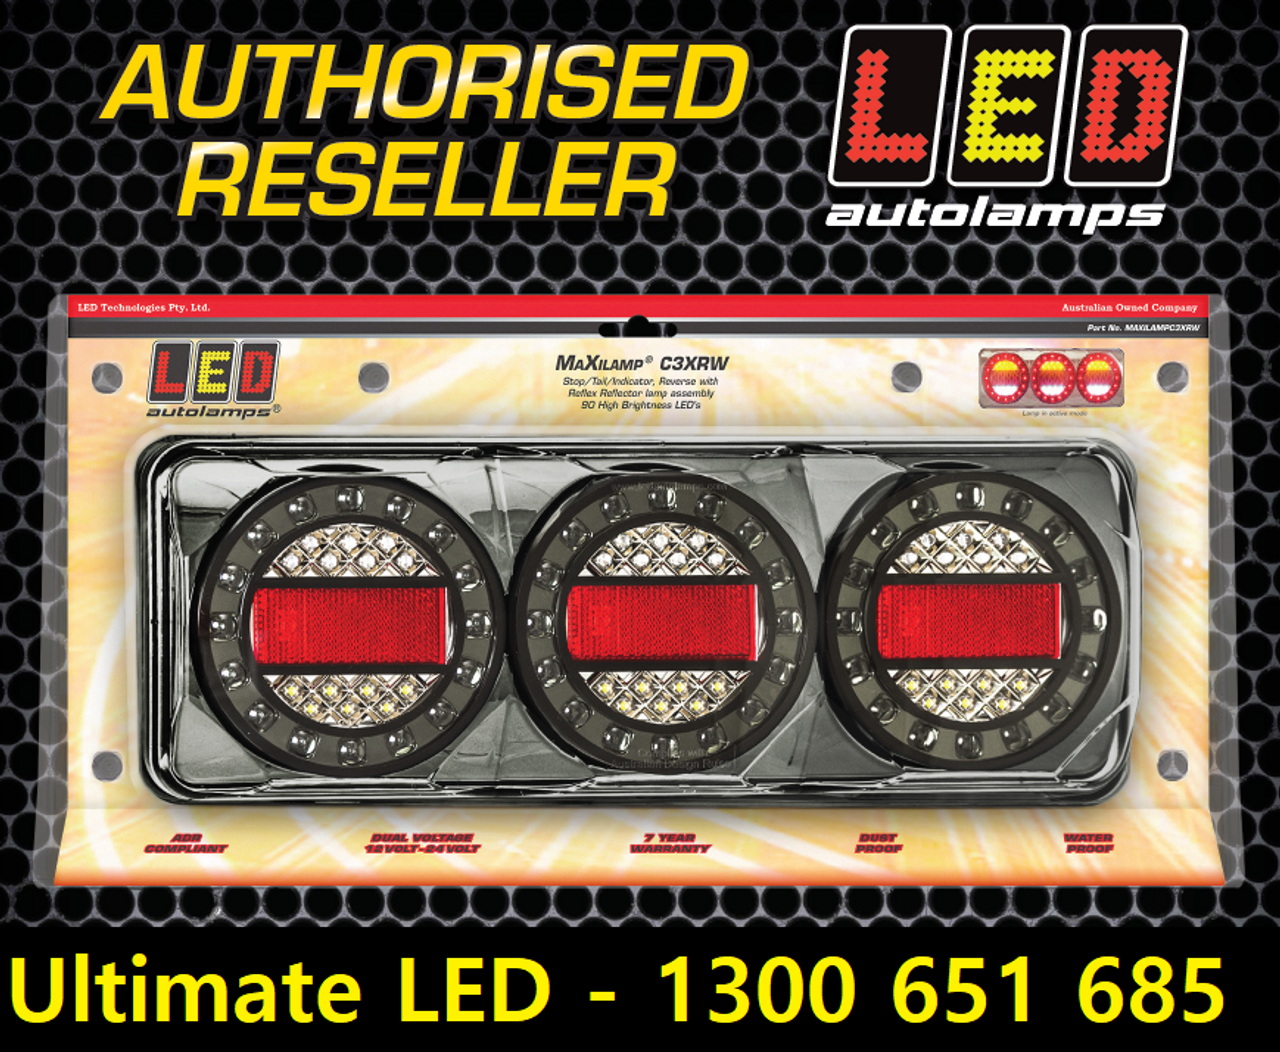 Genuine Maxilamp, LED Tail Light. Stop, Tail & Indicator with Reflector Light Multi-Volt 12 & 24 Volt Clear Lens Round Reflector. Single Pack. LED Auto Lamps. MAXILAMPC1XCE. ADR Approved. 7 Year Warranty